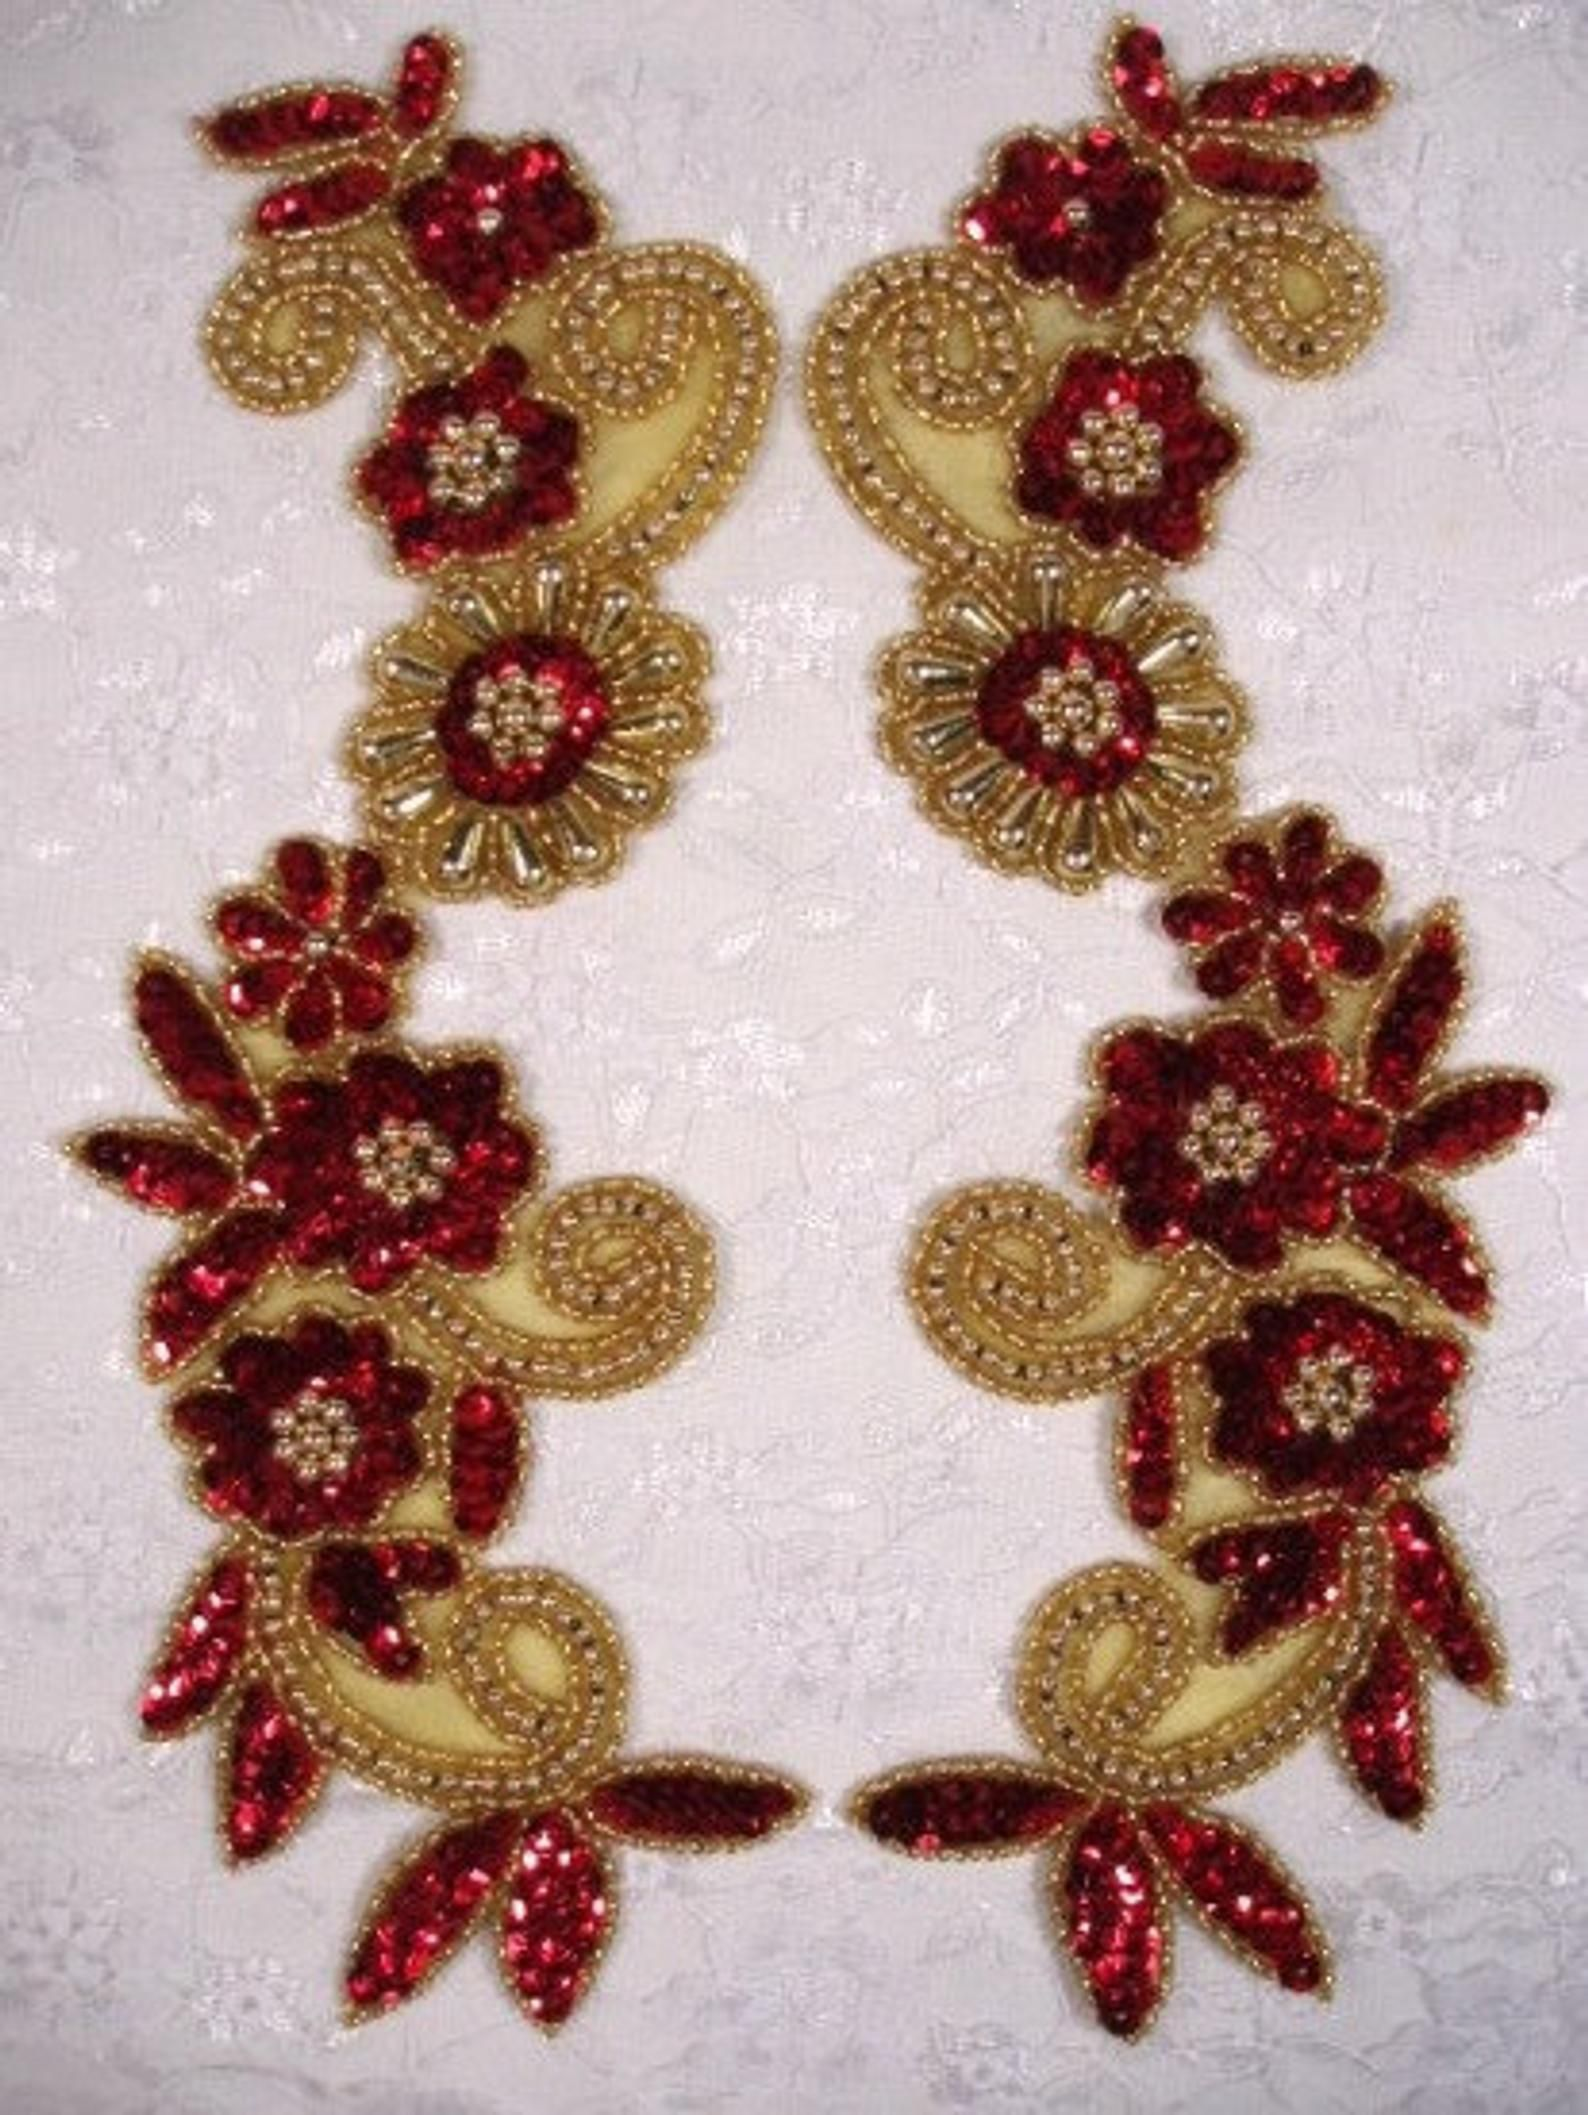 BLACK SILVER BEADED SEQUIN FLORAL APPLIQUES MIRROR PAIR SET 0183